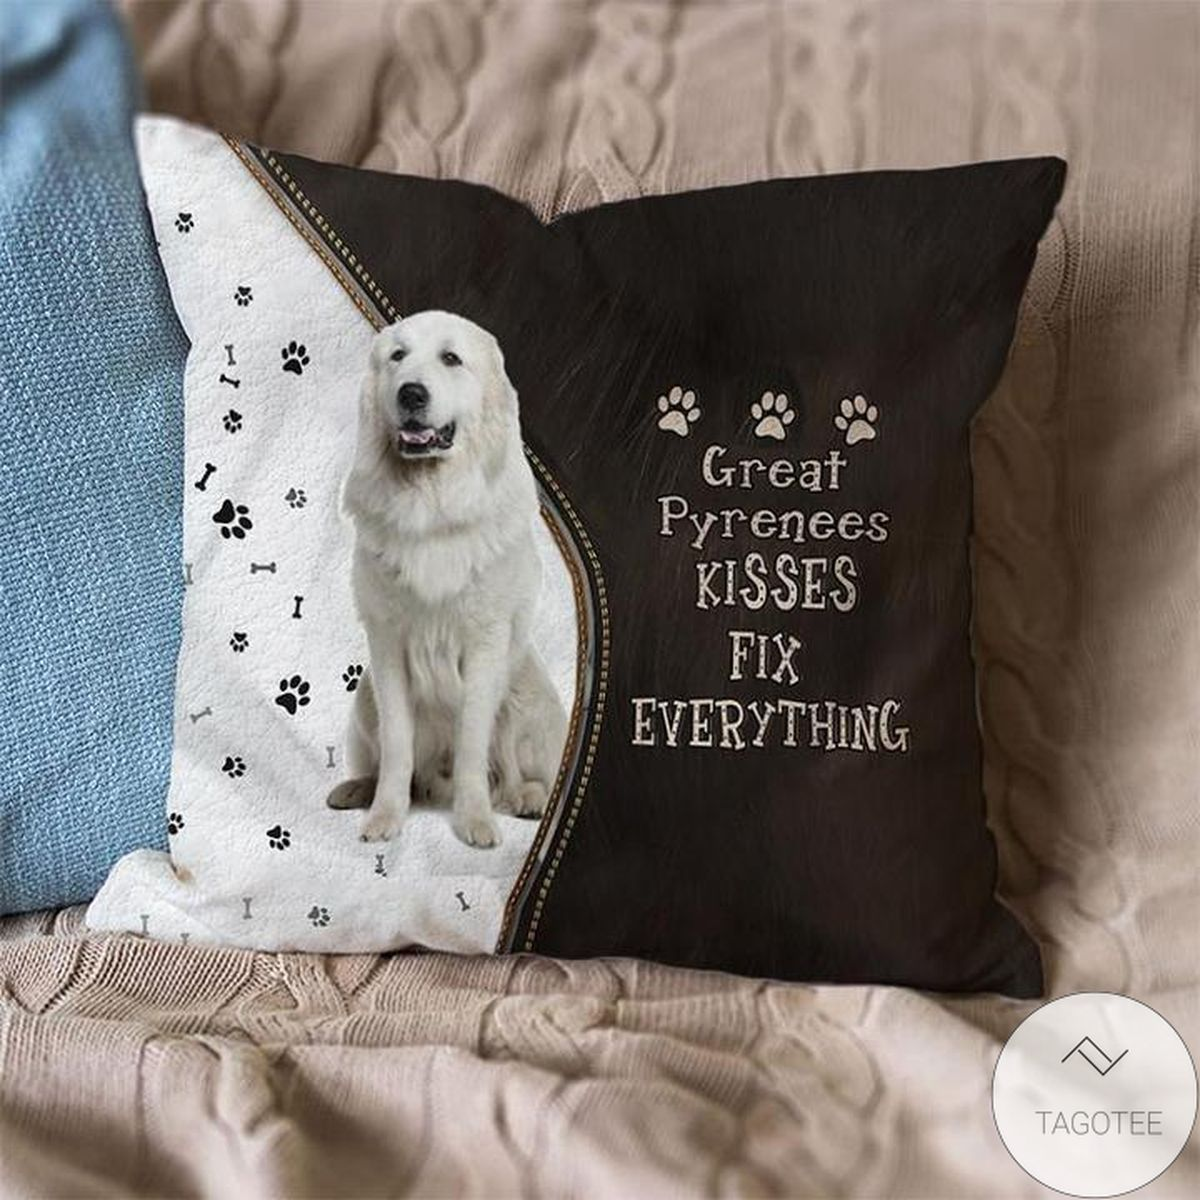 Drop Shipping Great Pyrenees Kisses Fix Everything Pillowcase